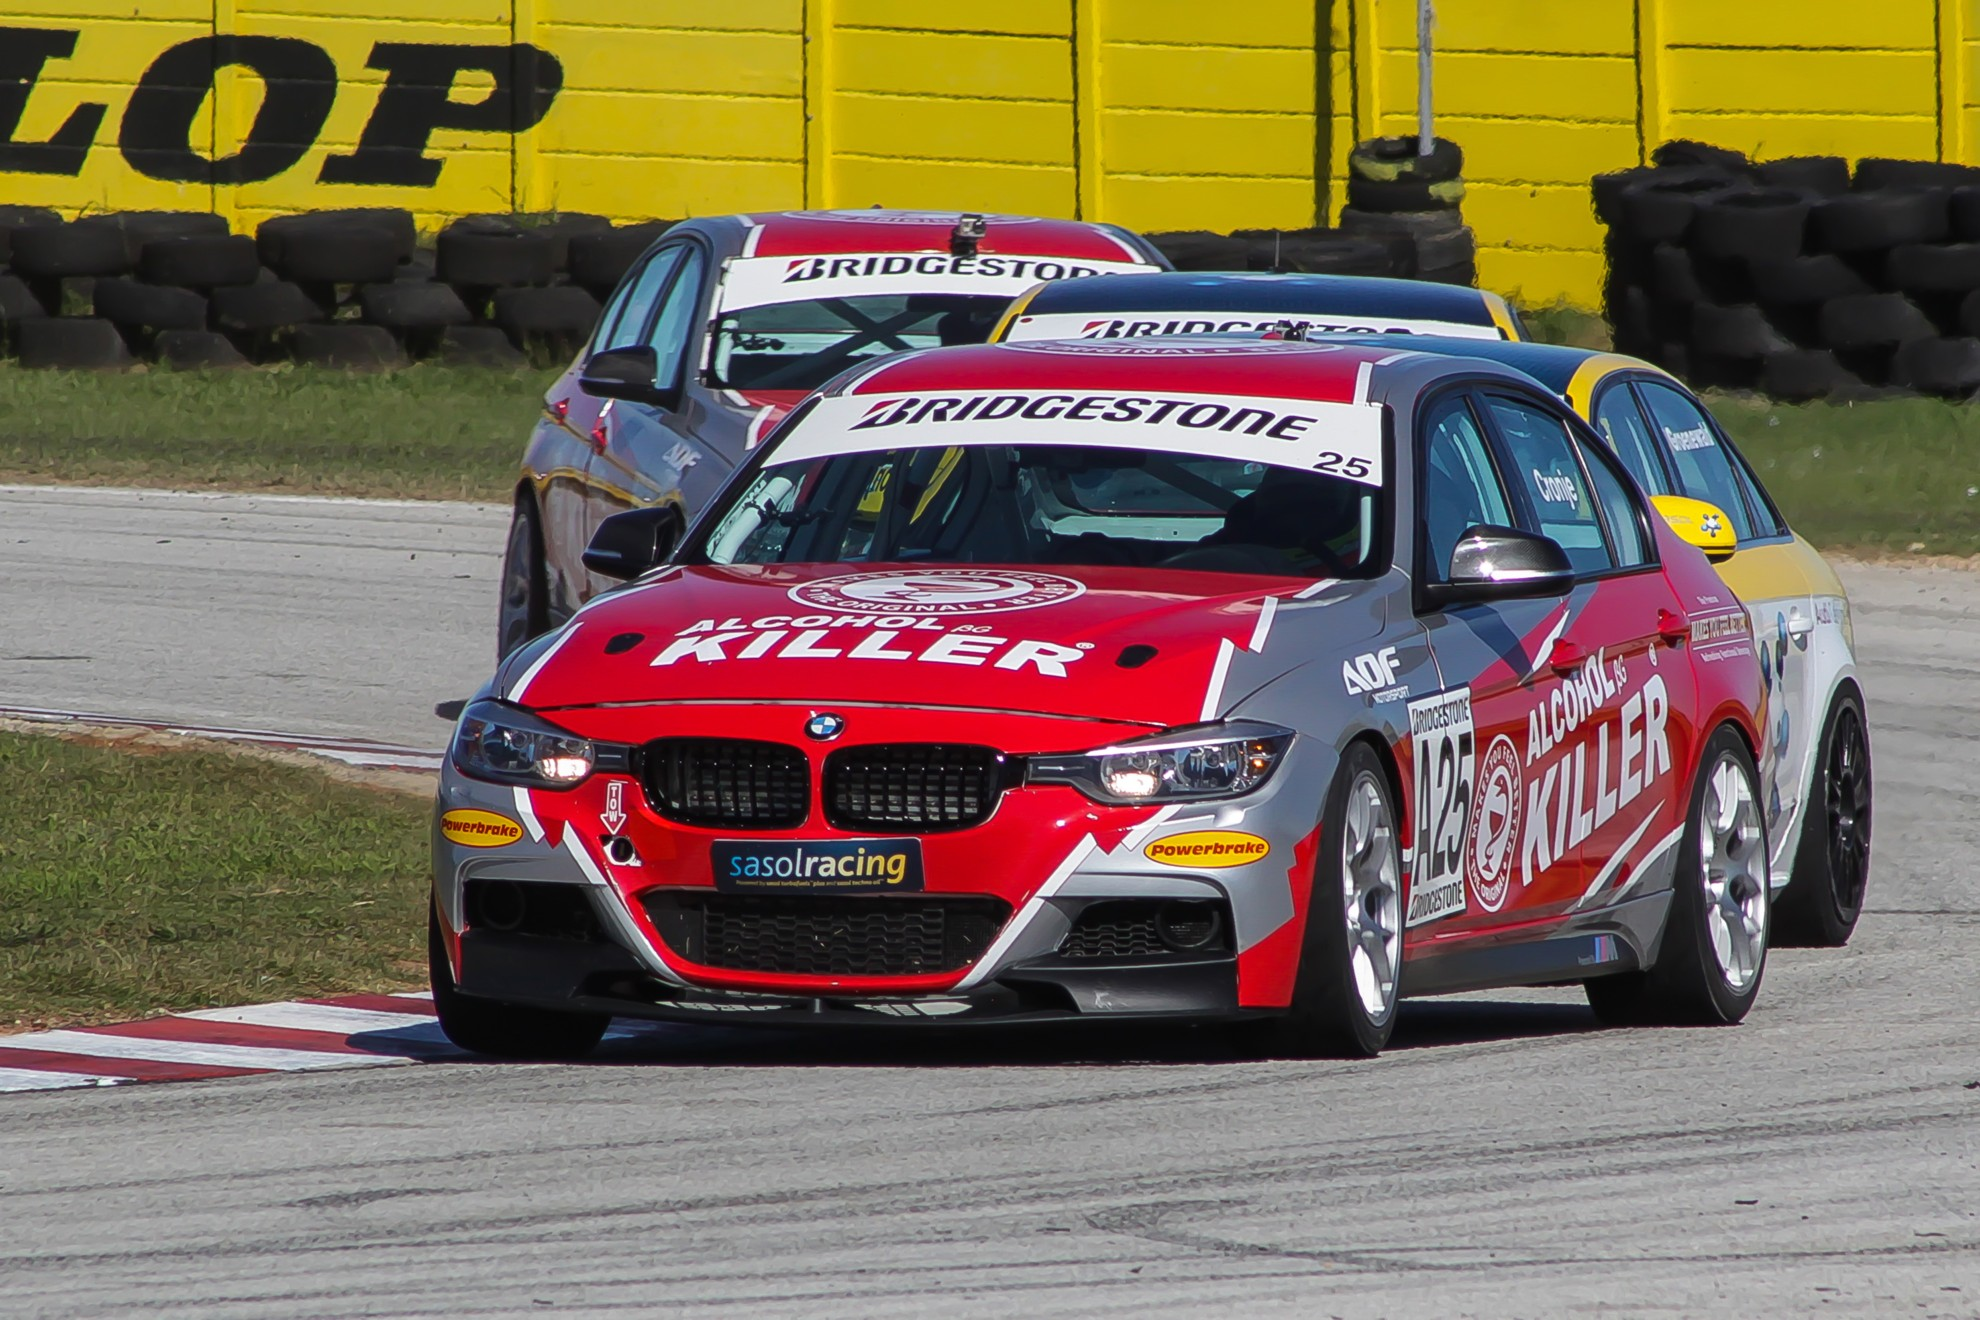 BMW Race Cars rule in East London thriller